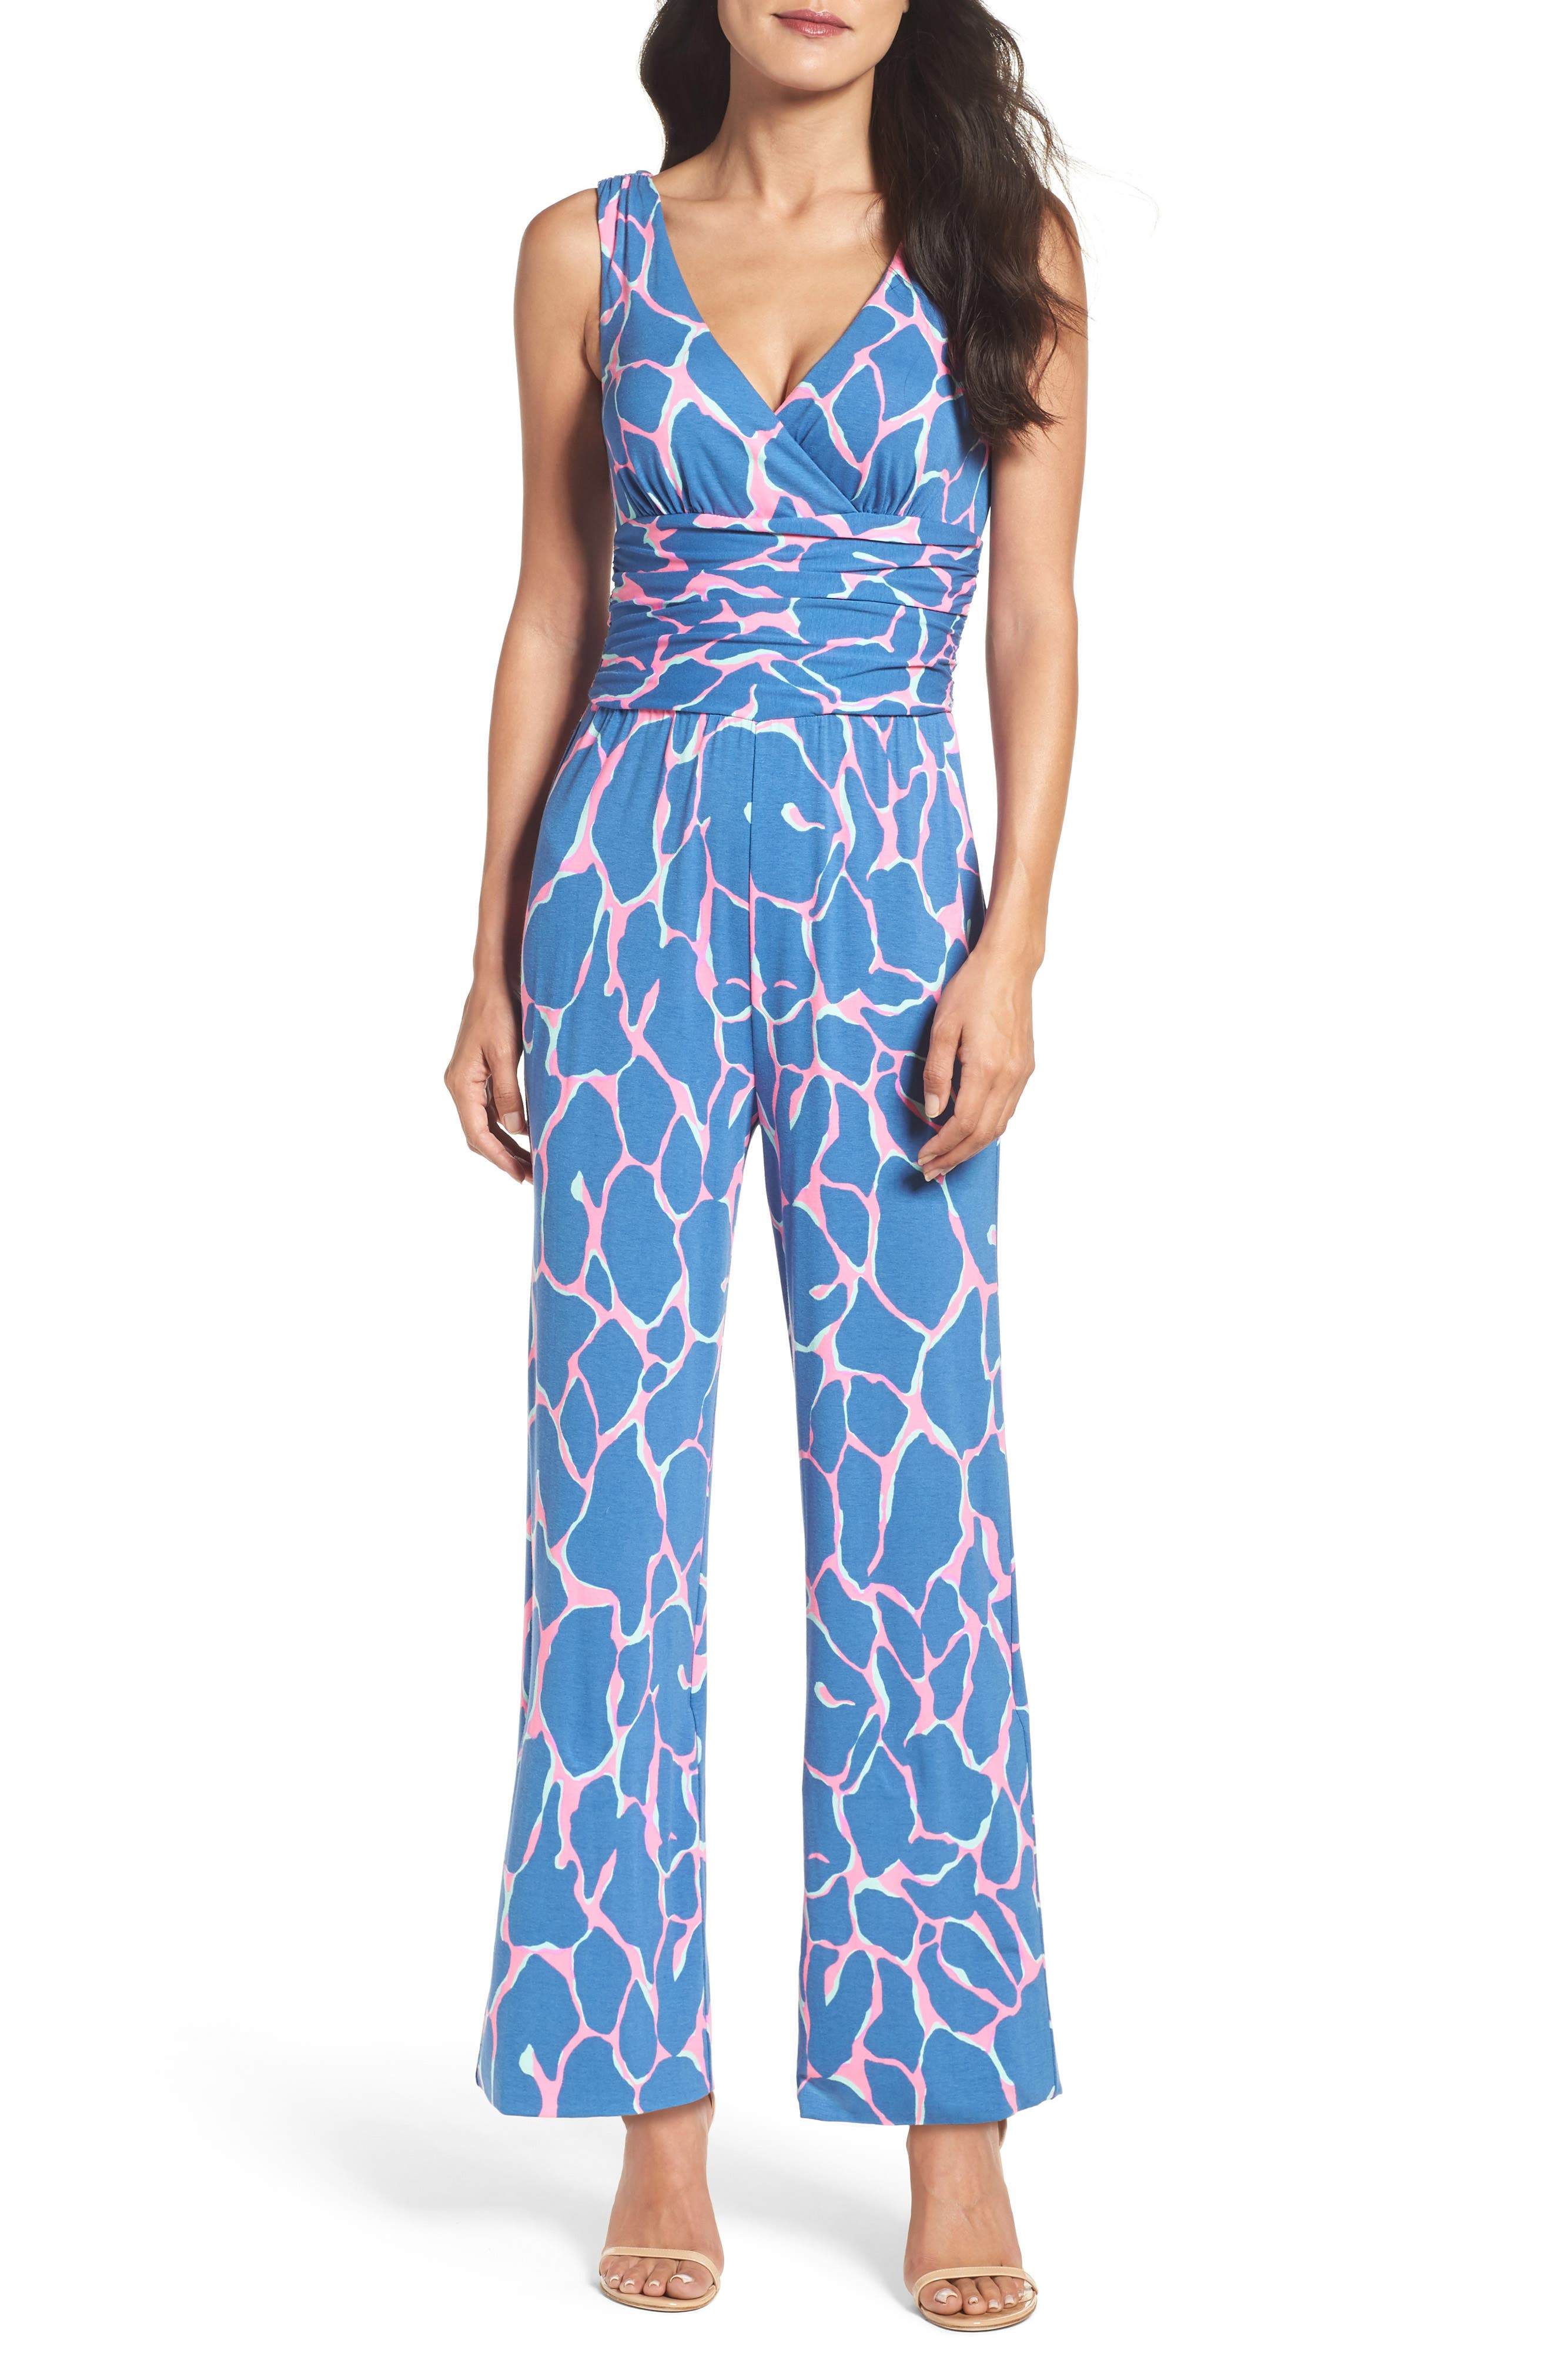 Alternate Image 1 Selected - Lilly Pulitzer® Sloane Wide Leg Jumpsuit